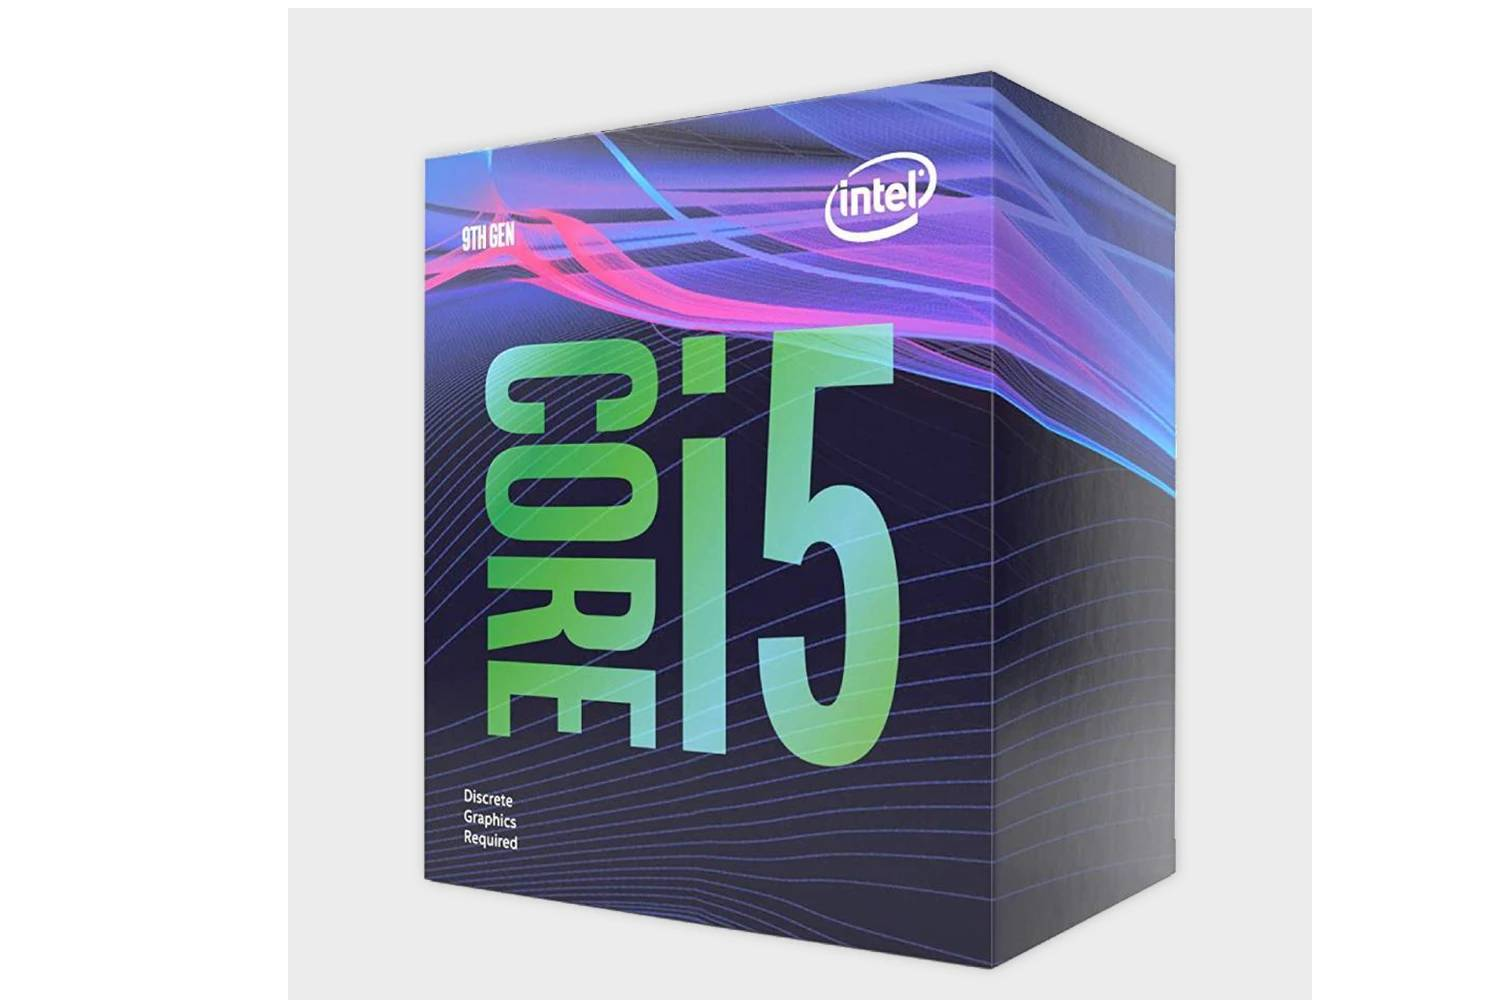 Intel Core i5 9400F 9th Generation Desktop Processor